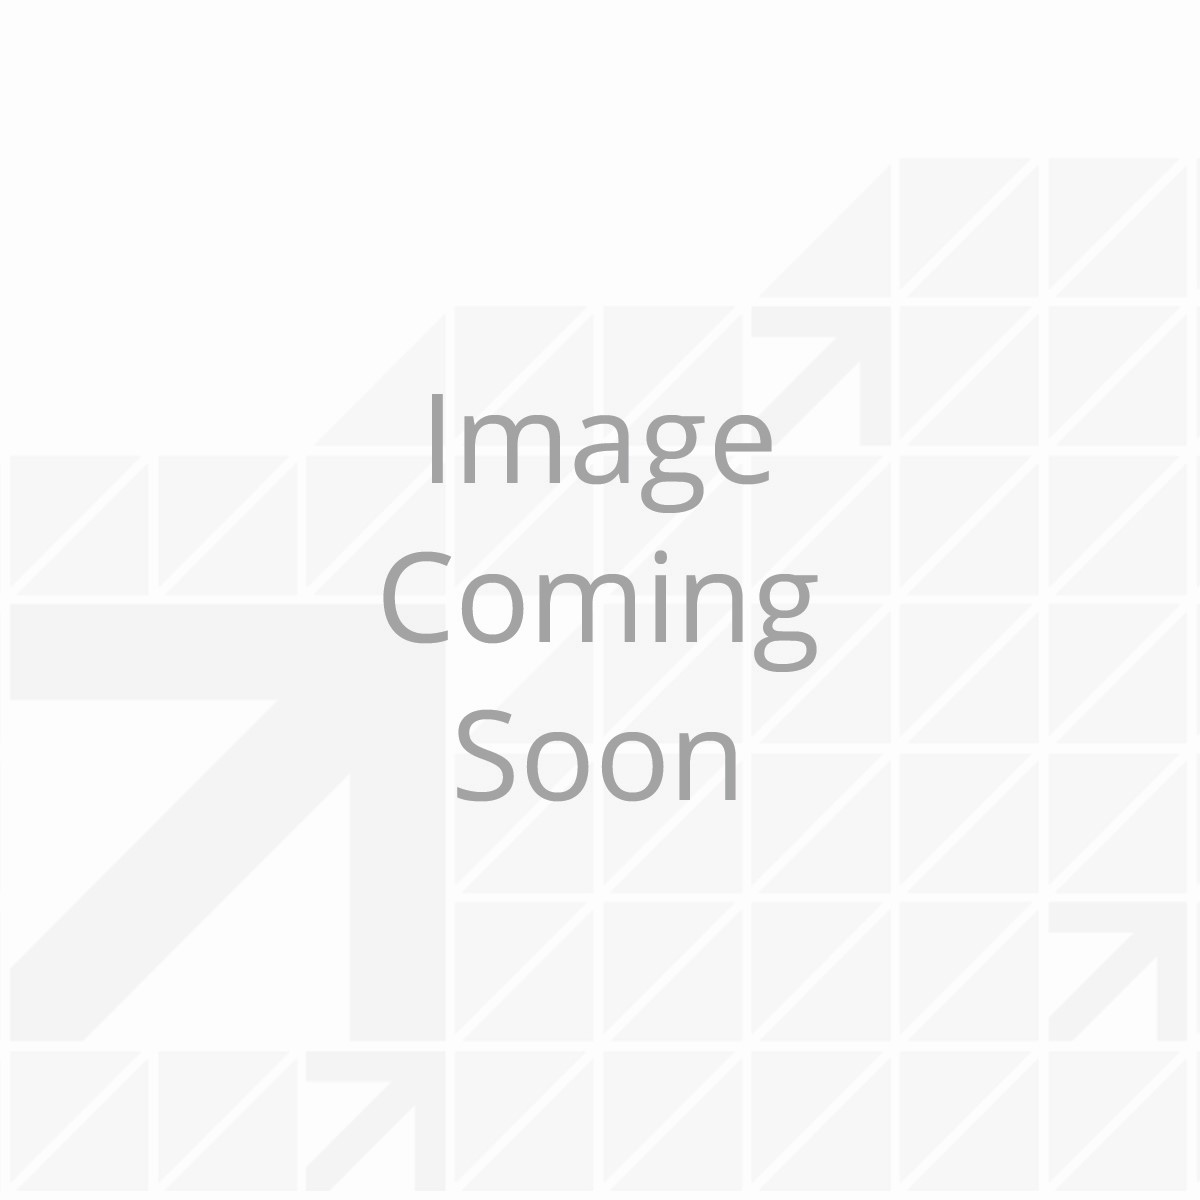 Lippert on Twitter